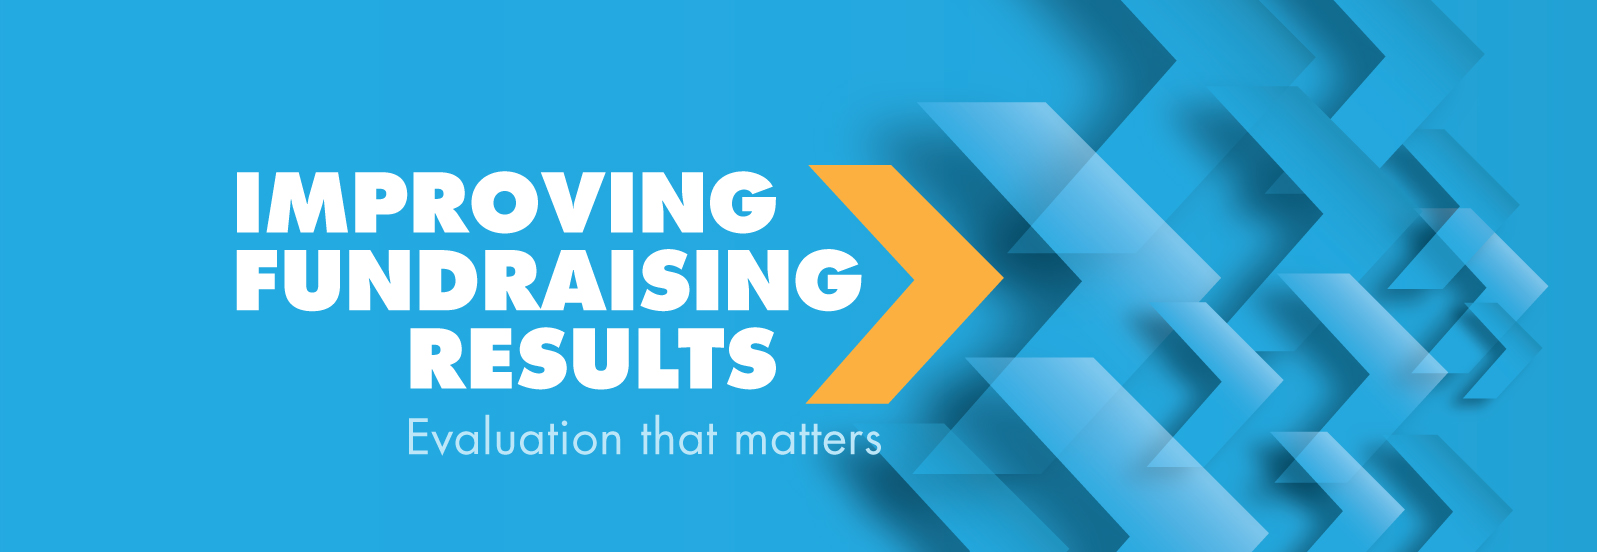 Improving Fundraising Results Banner